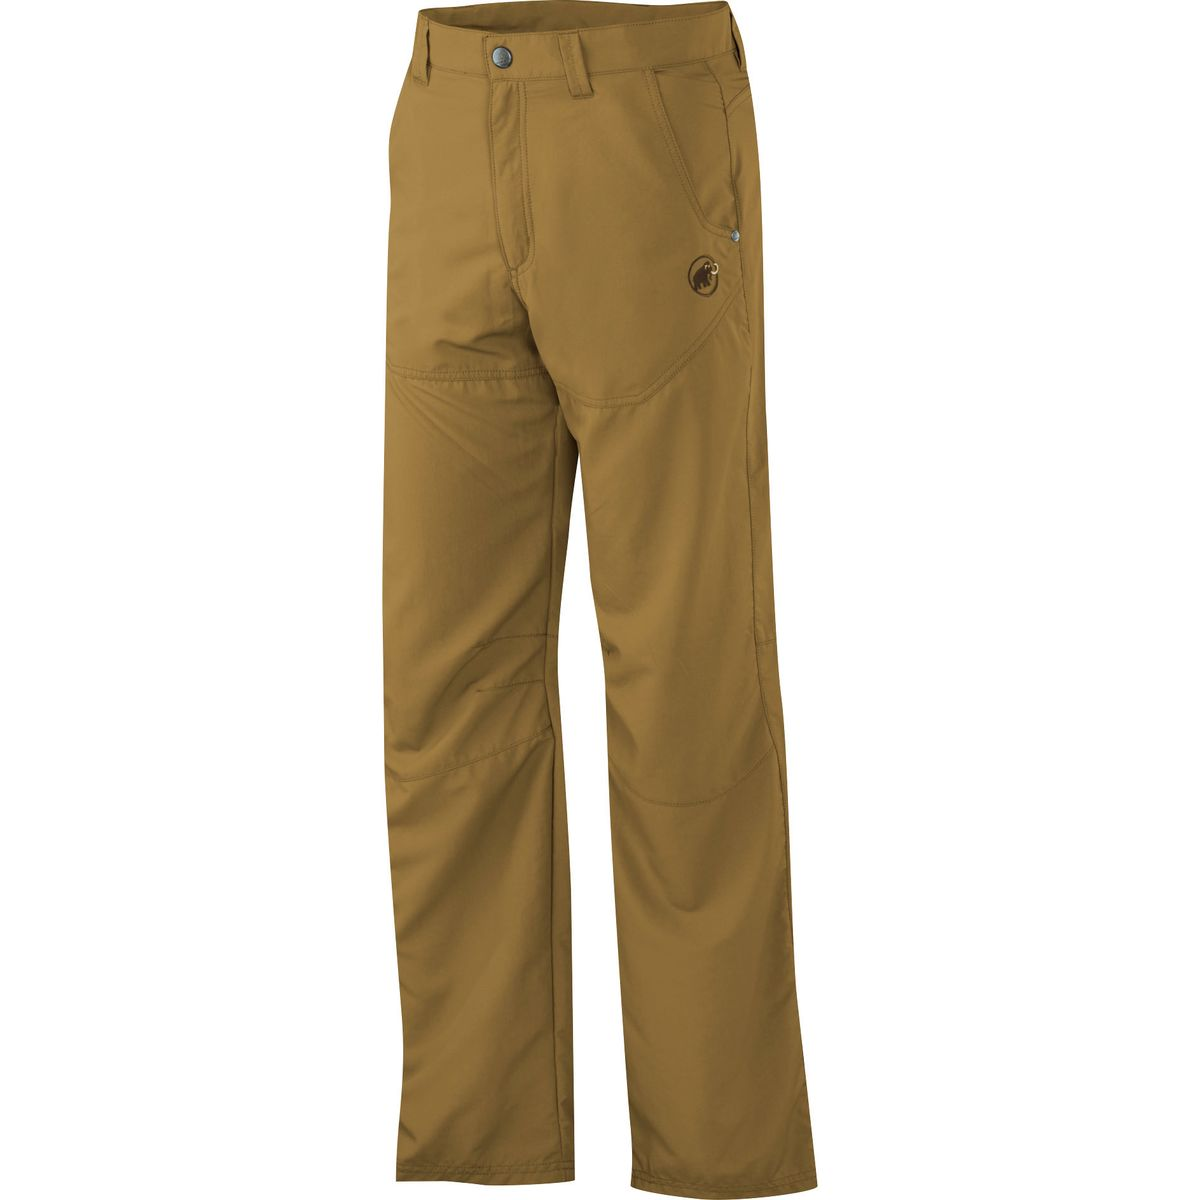 Mammut Explore Pants